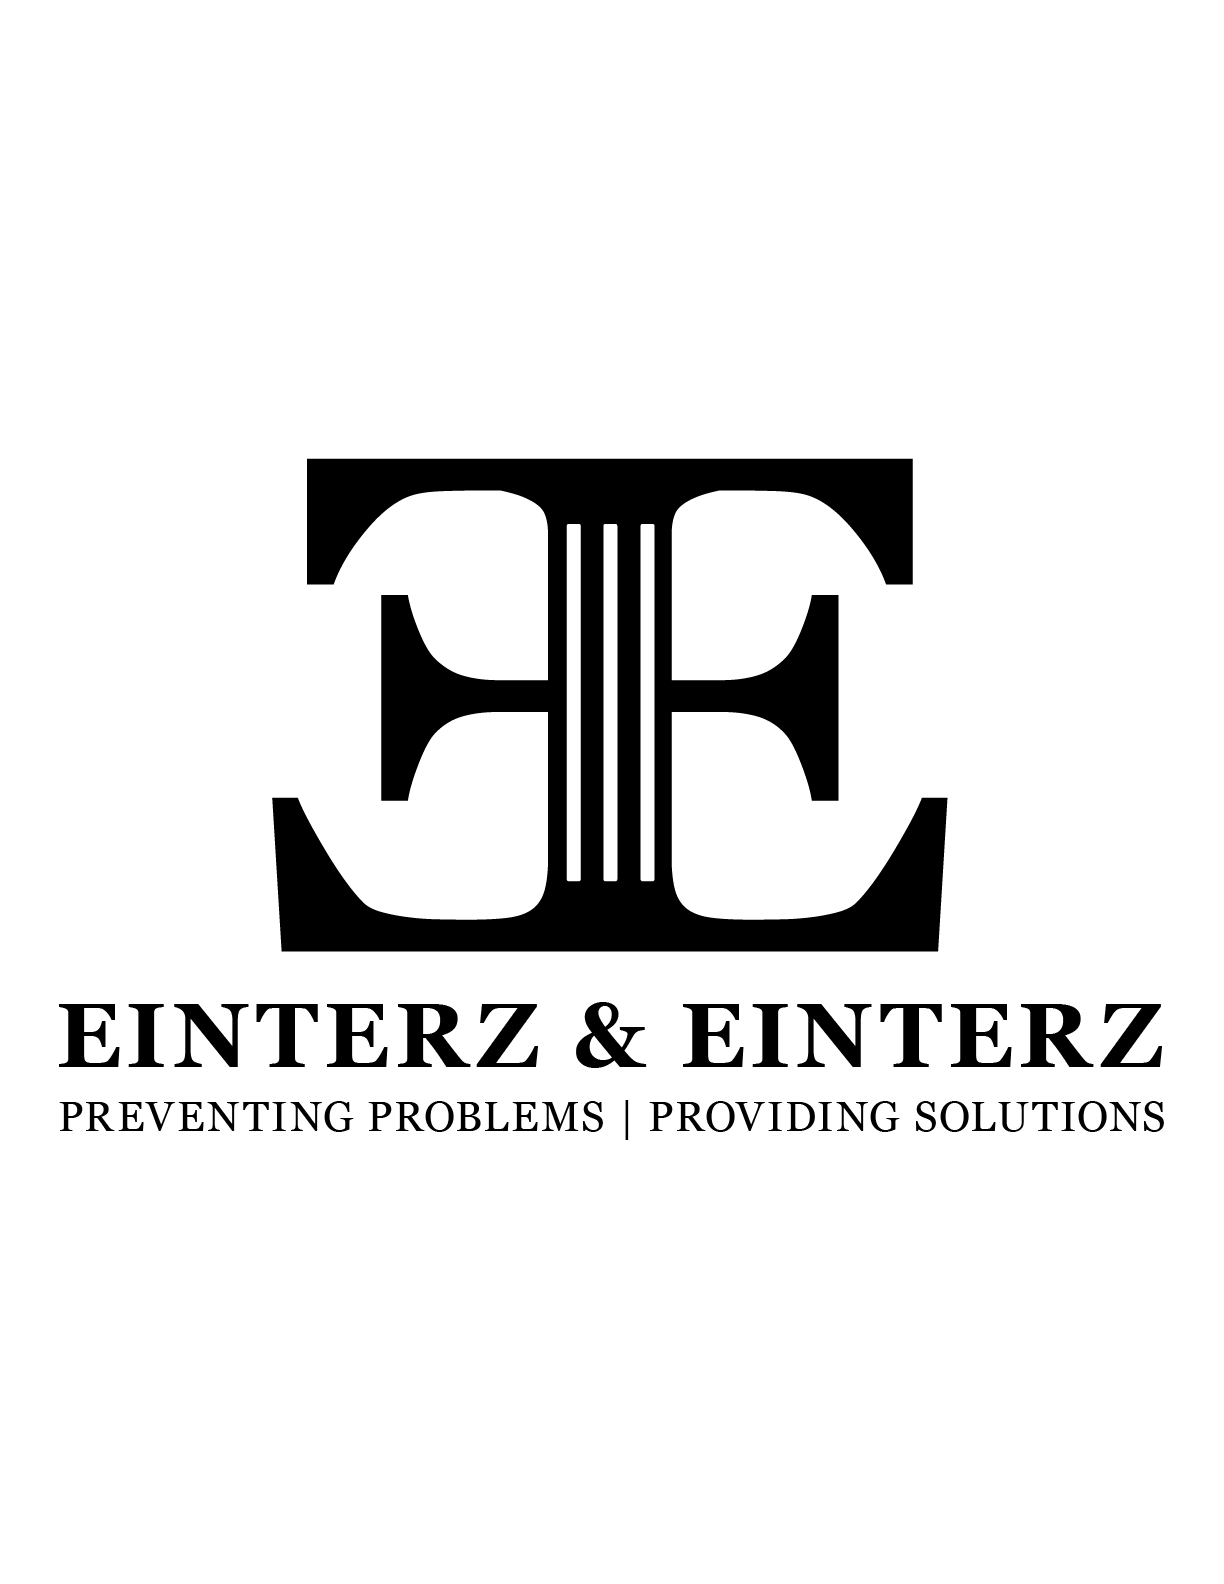 Einterz & Einterz Law